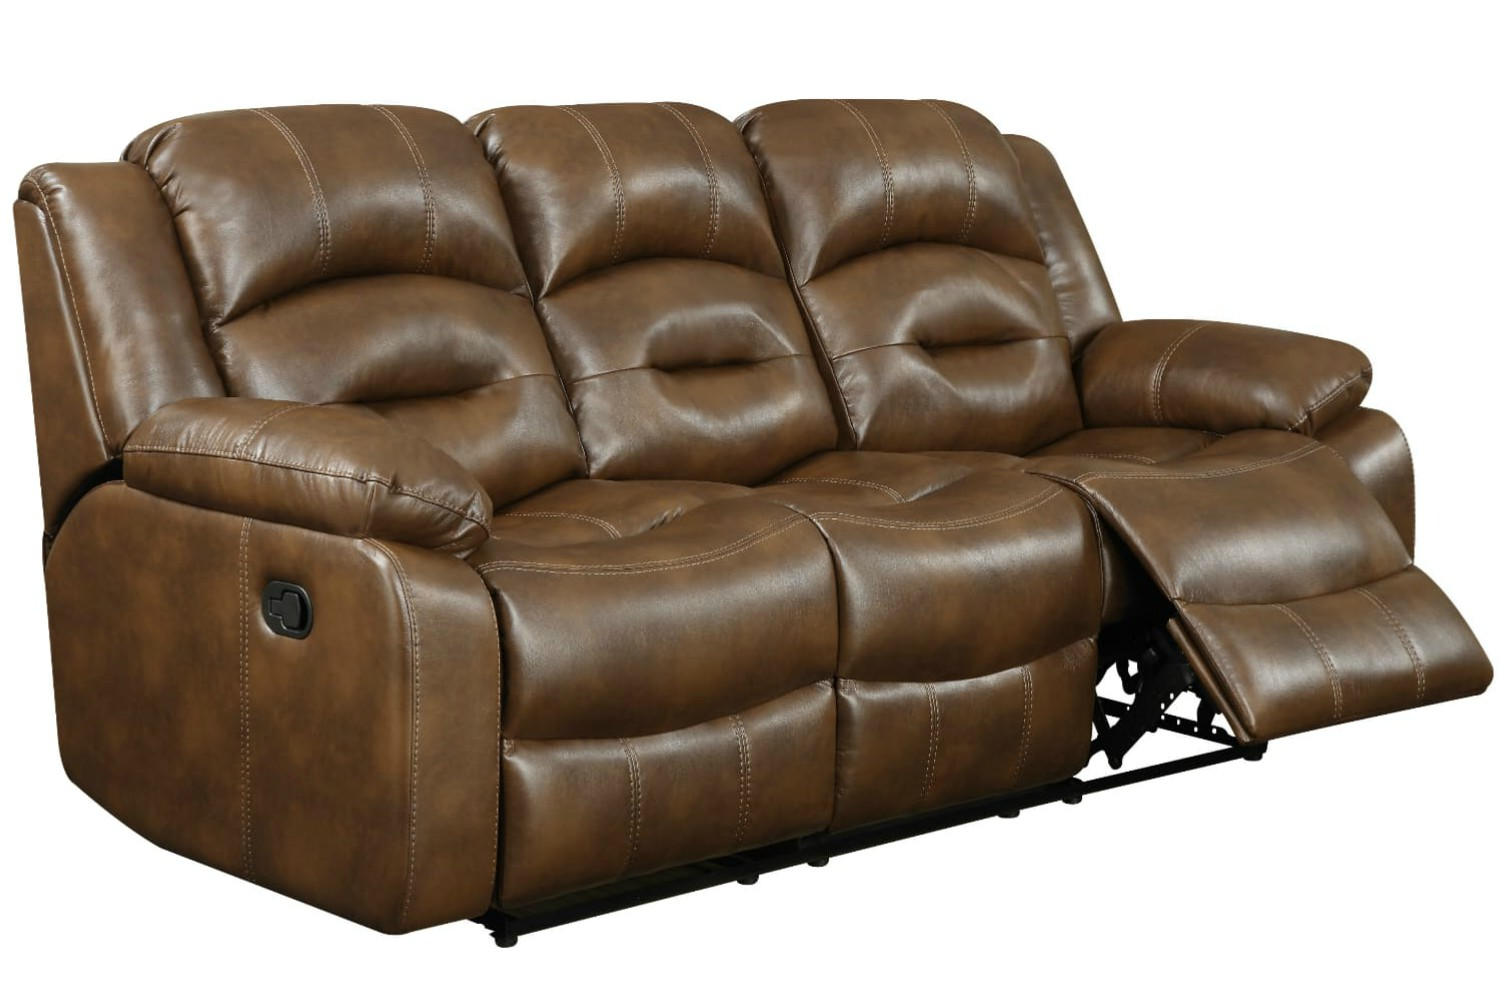 harveys 3 seater recliner sofa canyon ridge microfiber queen sleeper global furniture direct